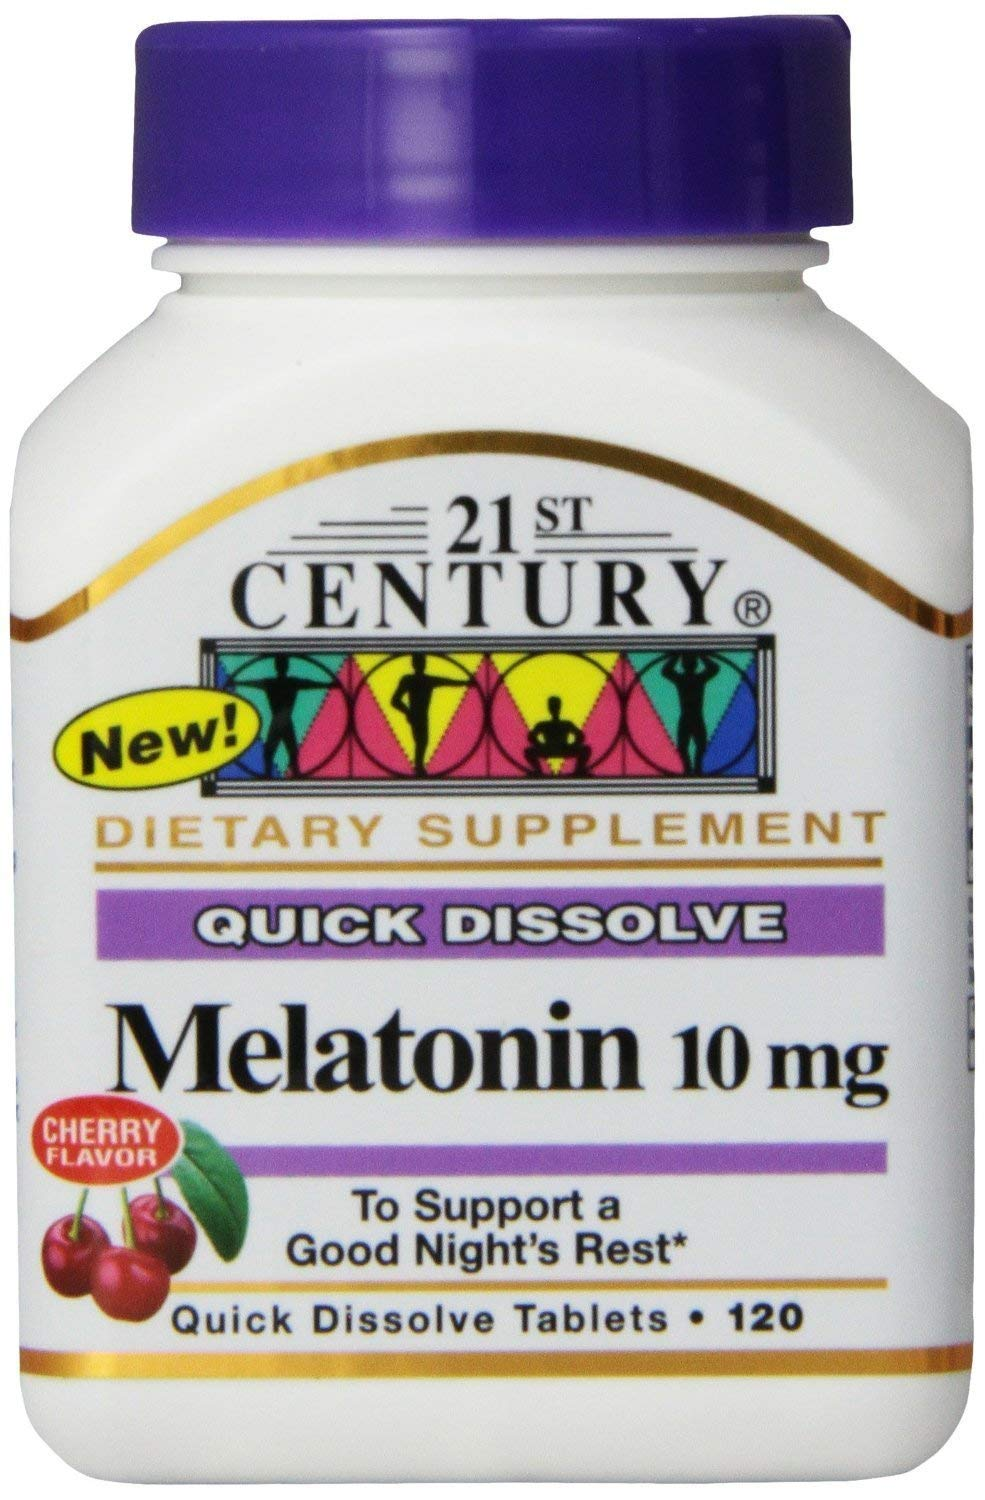 Amazon.com: 21st Century Melatonin Quick Dissolve Tablets, Cherry, 10 mg, 120 Count (Pack of 2): Health & Personal Care